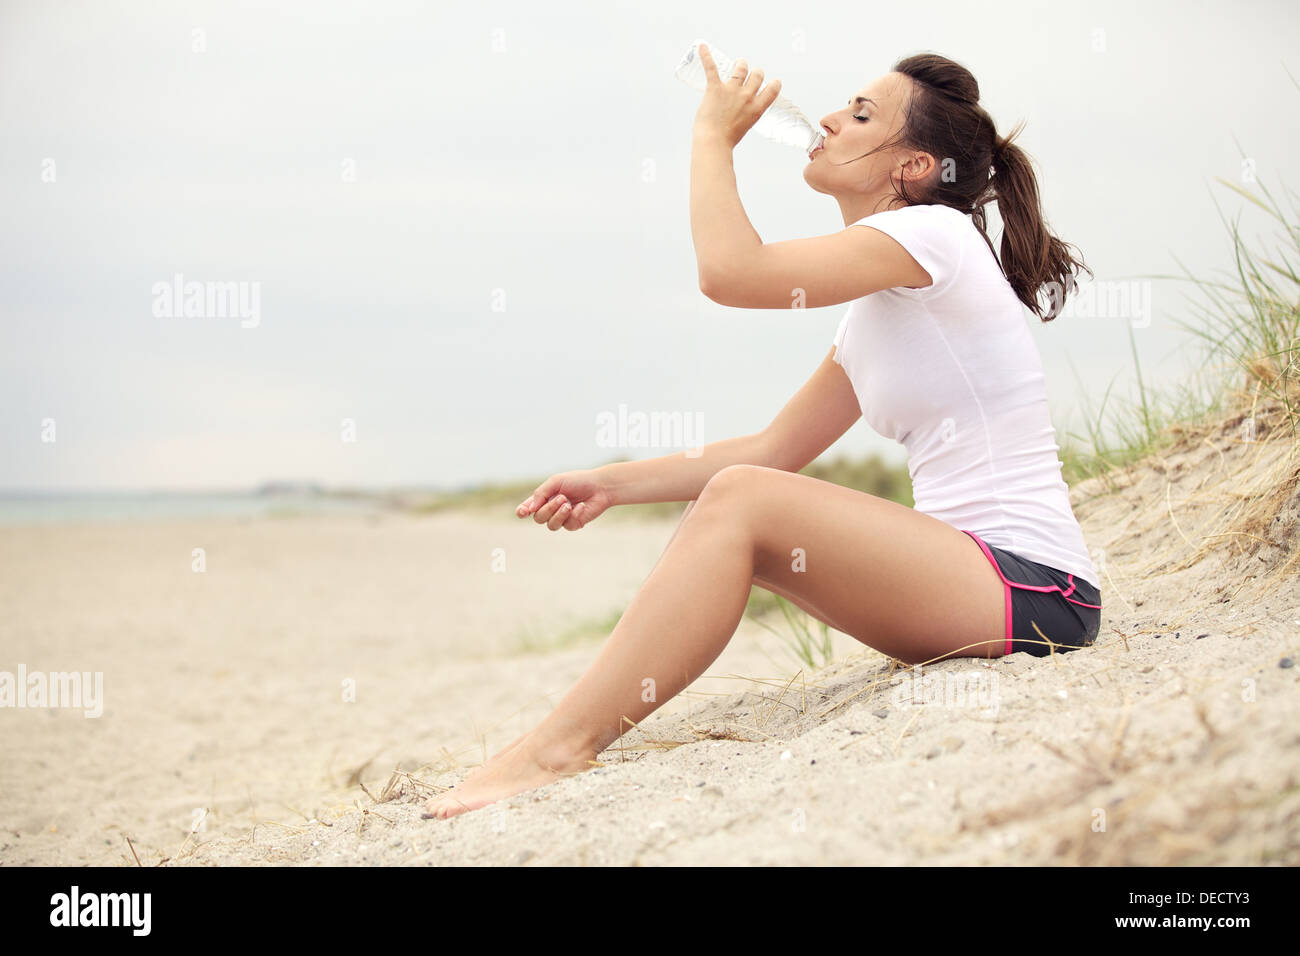 Active fitness woman at the beach drinking water from bottle. - Stock Image